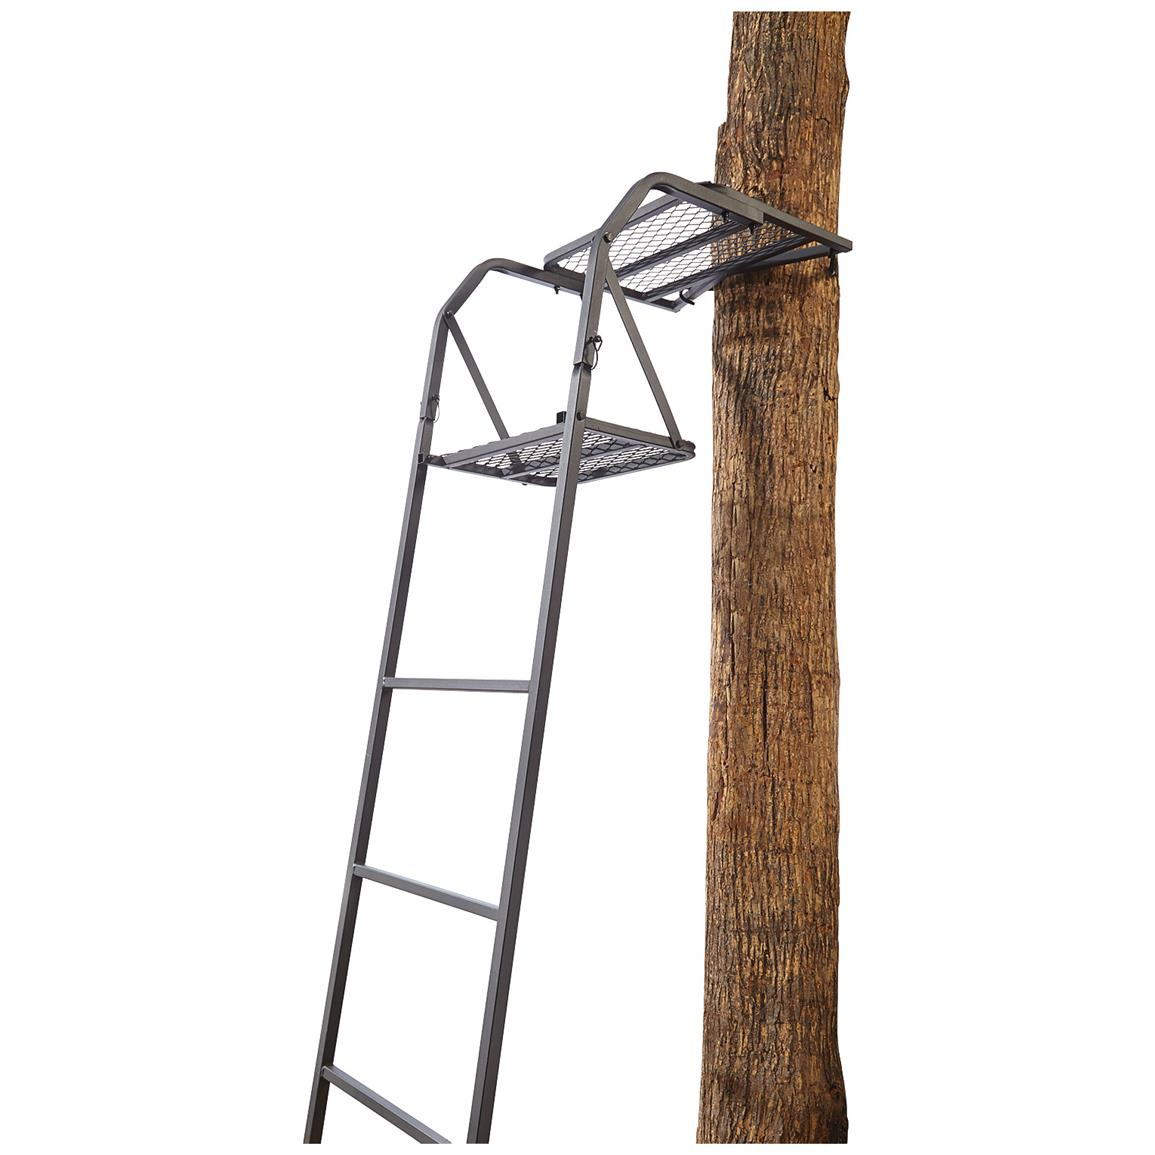 Guide Gear 15 Ladder Stand 49 99 Hunting Gear Deals